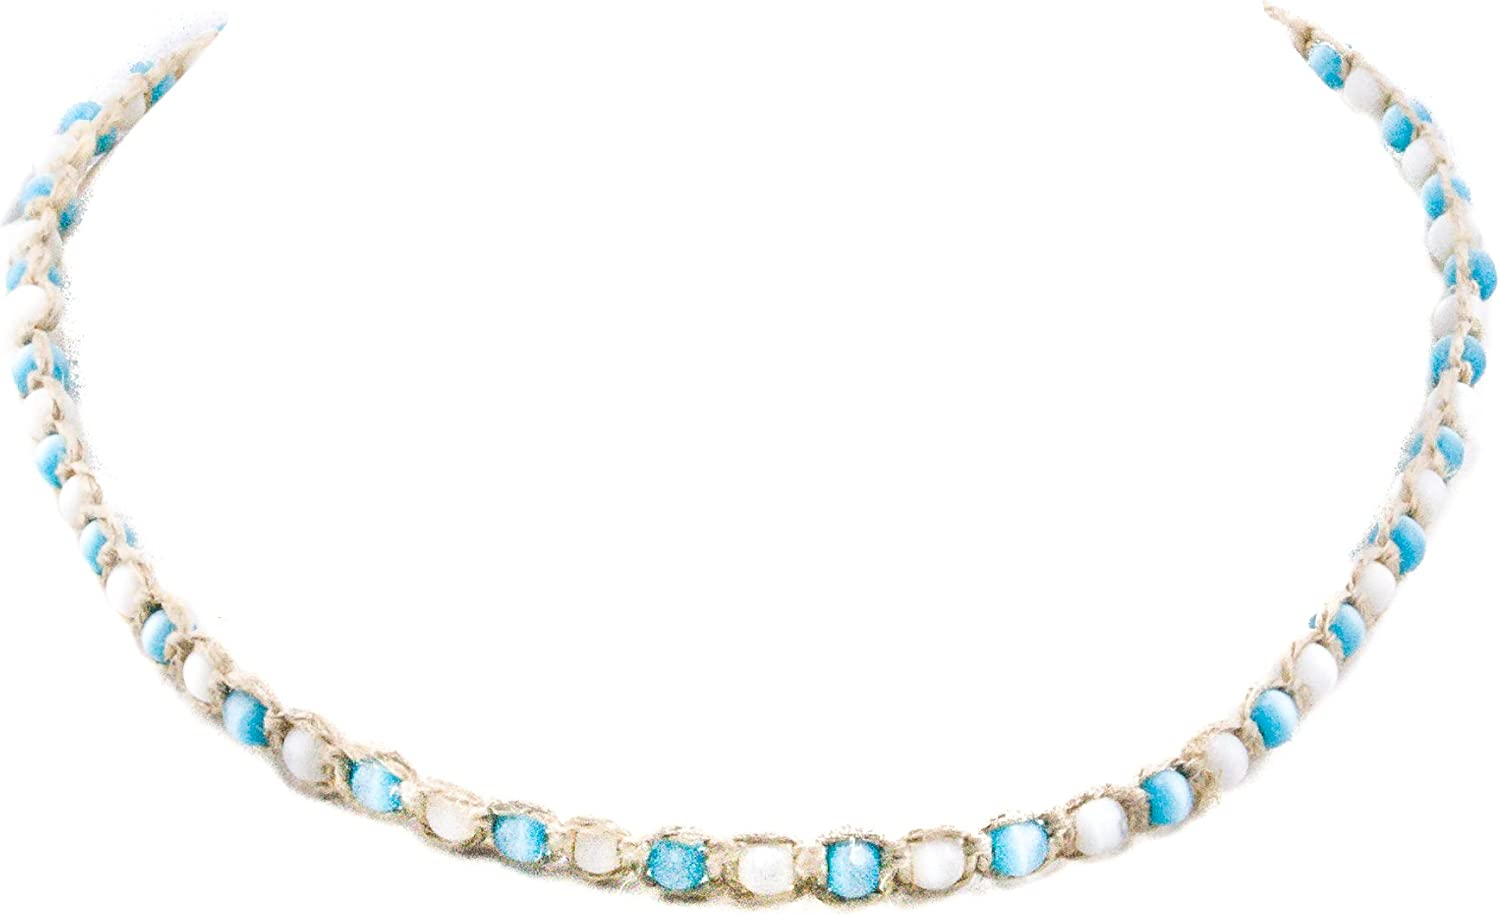 Hemp Choker Necklace with White and Light Blue Cats Eye Beads